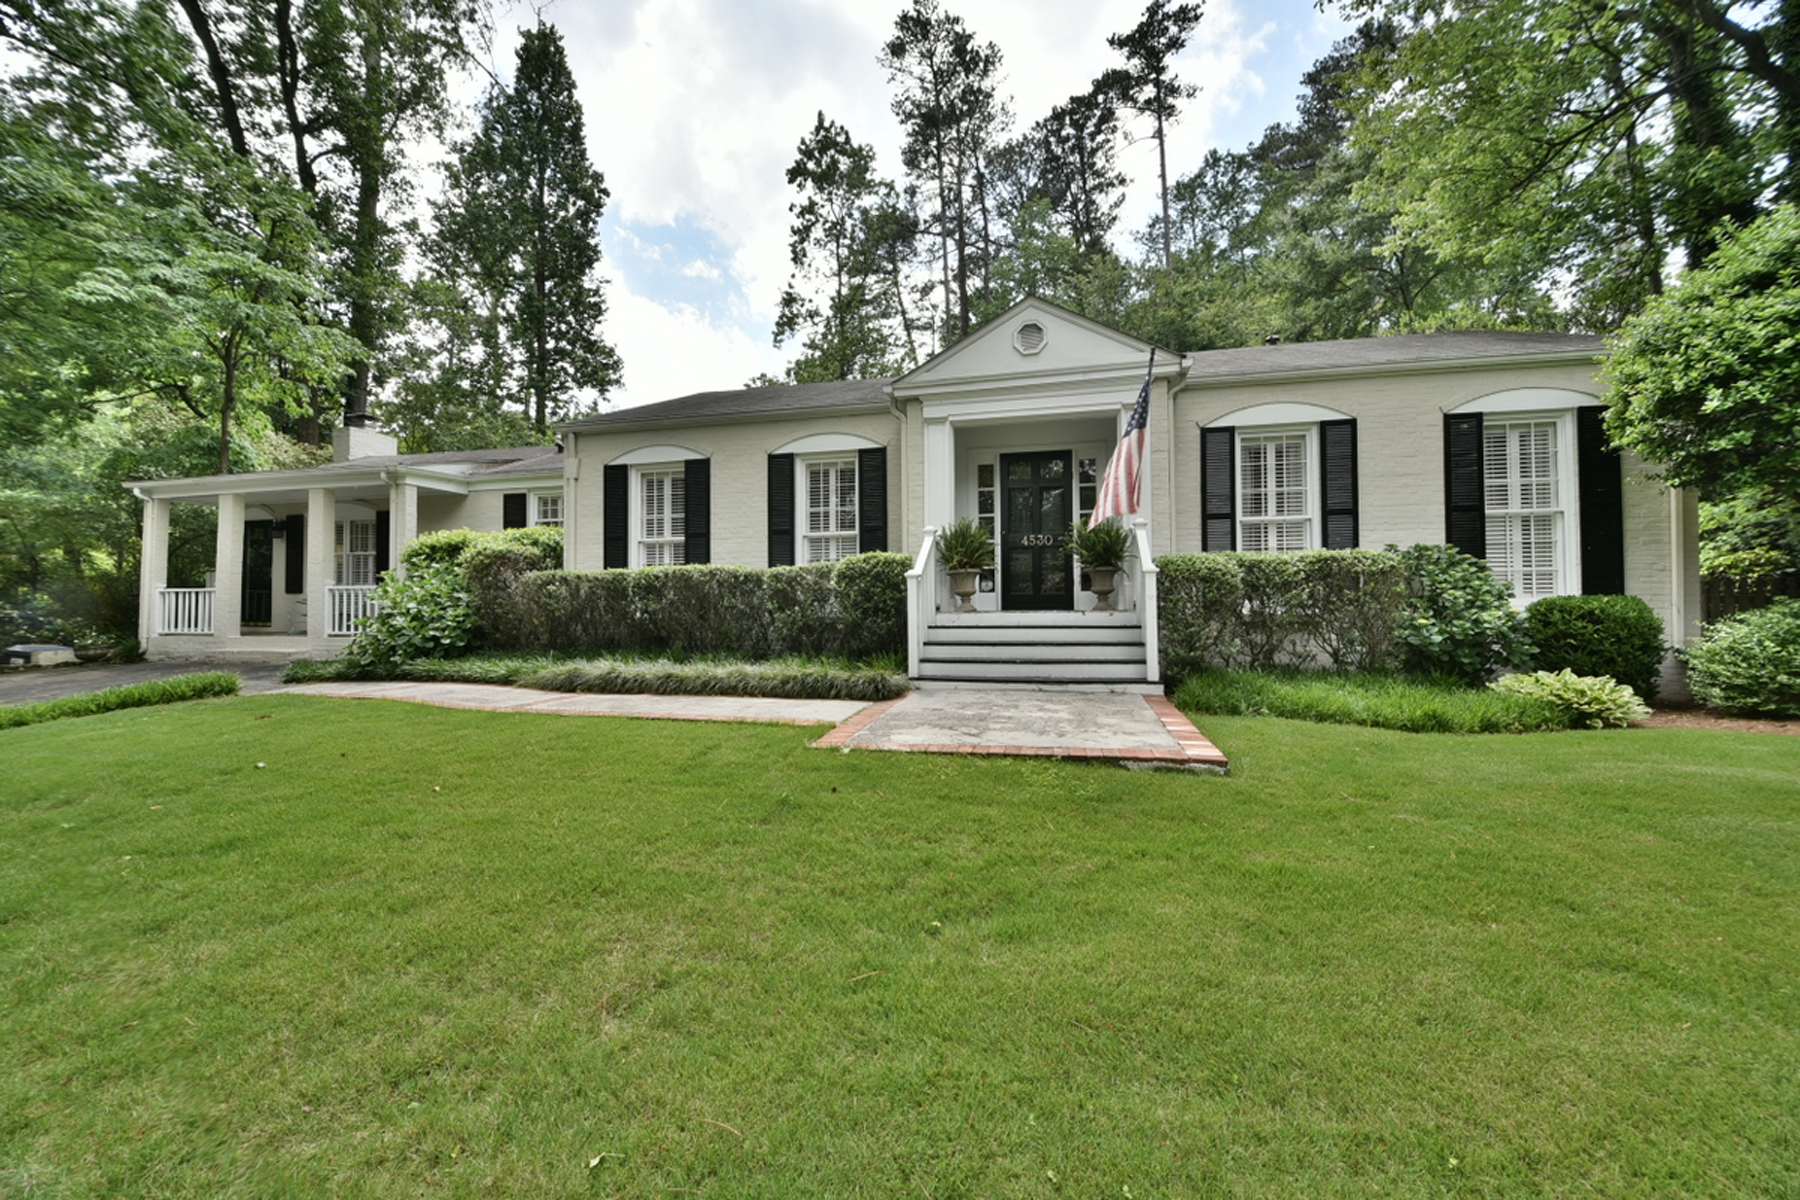 Vivienda unifamiliar por un Venta en Charming Ranch With Private Backyard 4530 Dalmer Road Atlanta, Georgia 30342 Estados Unidos